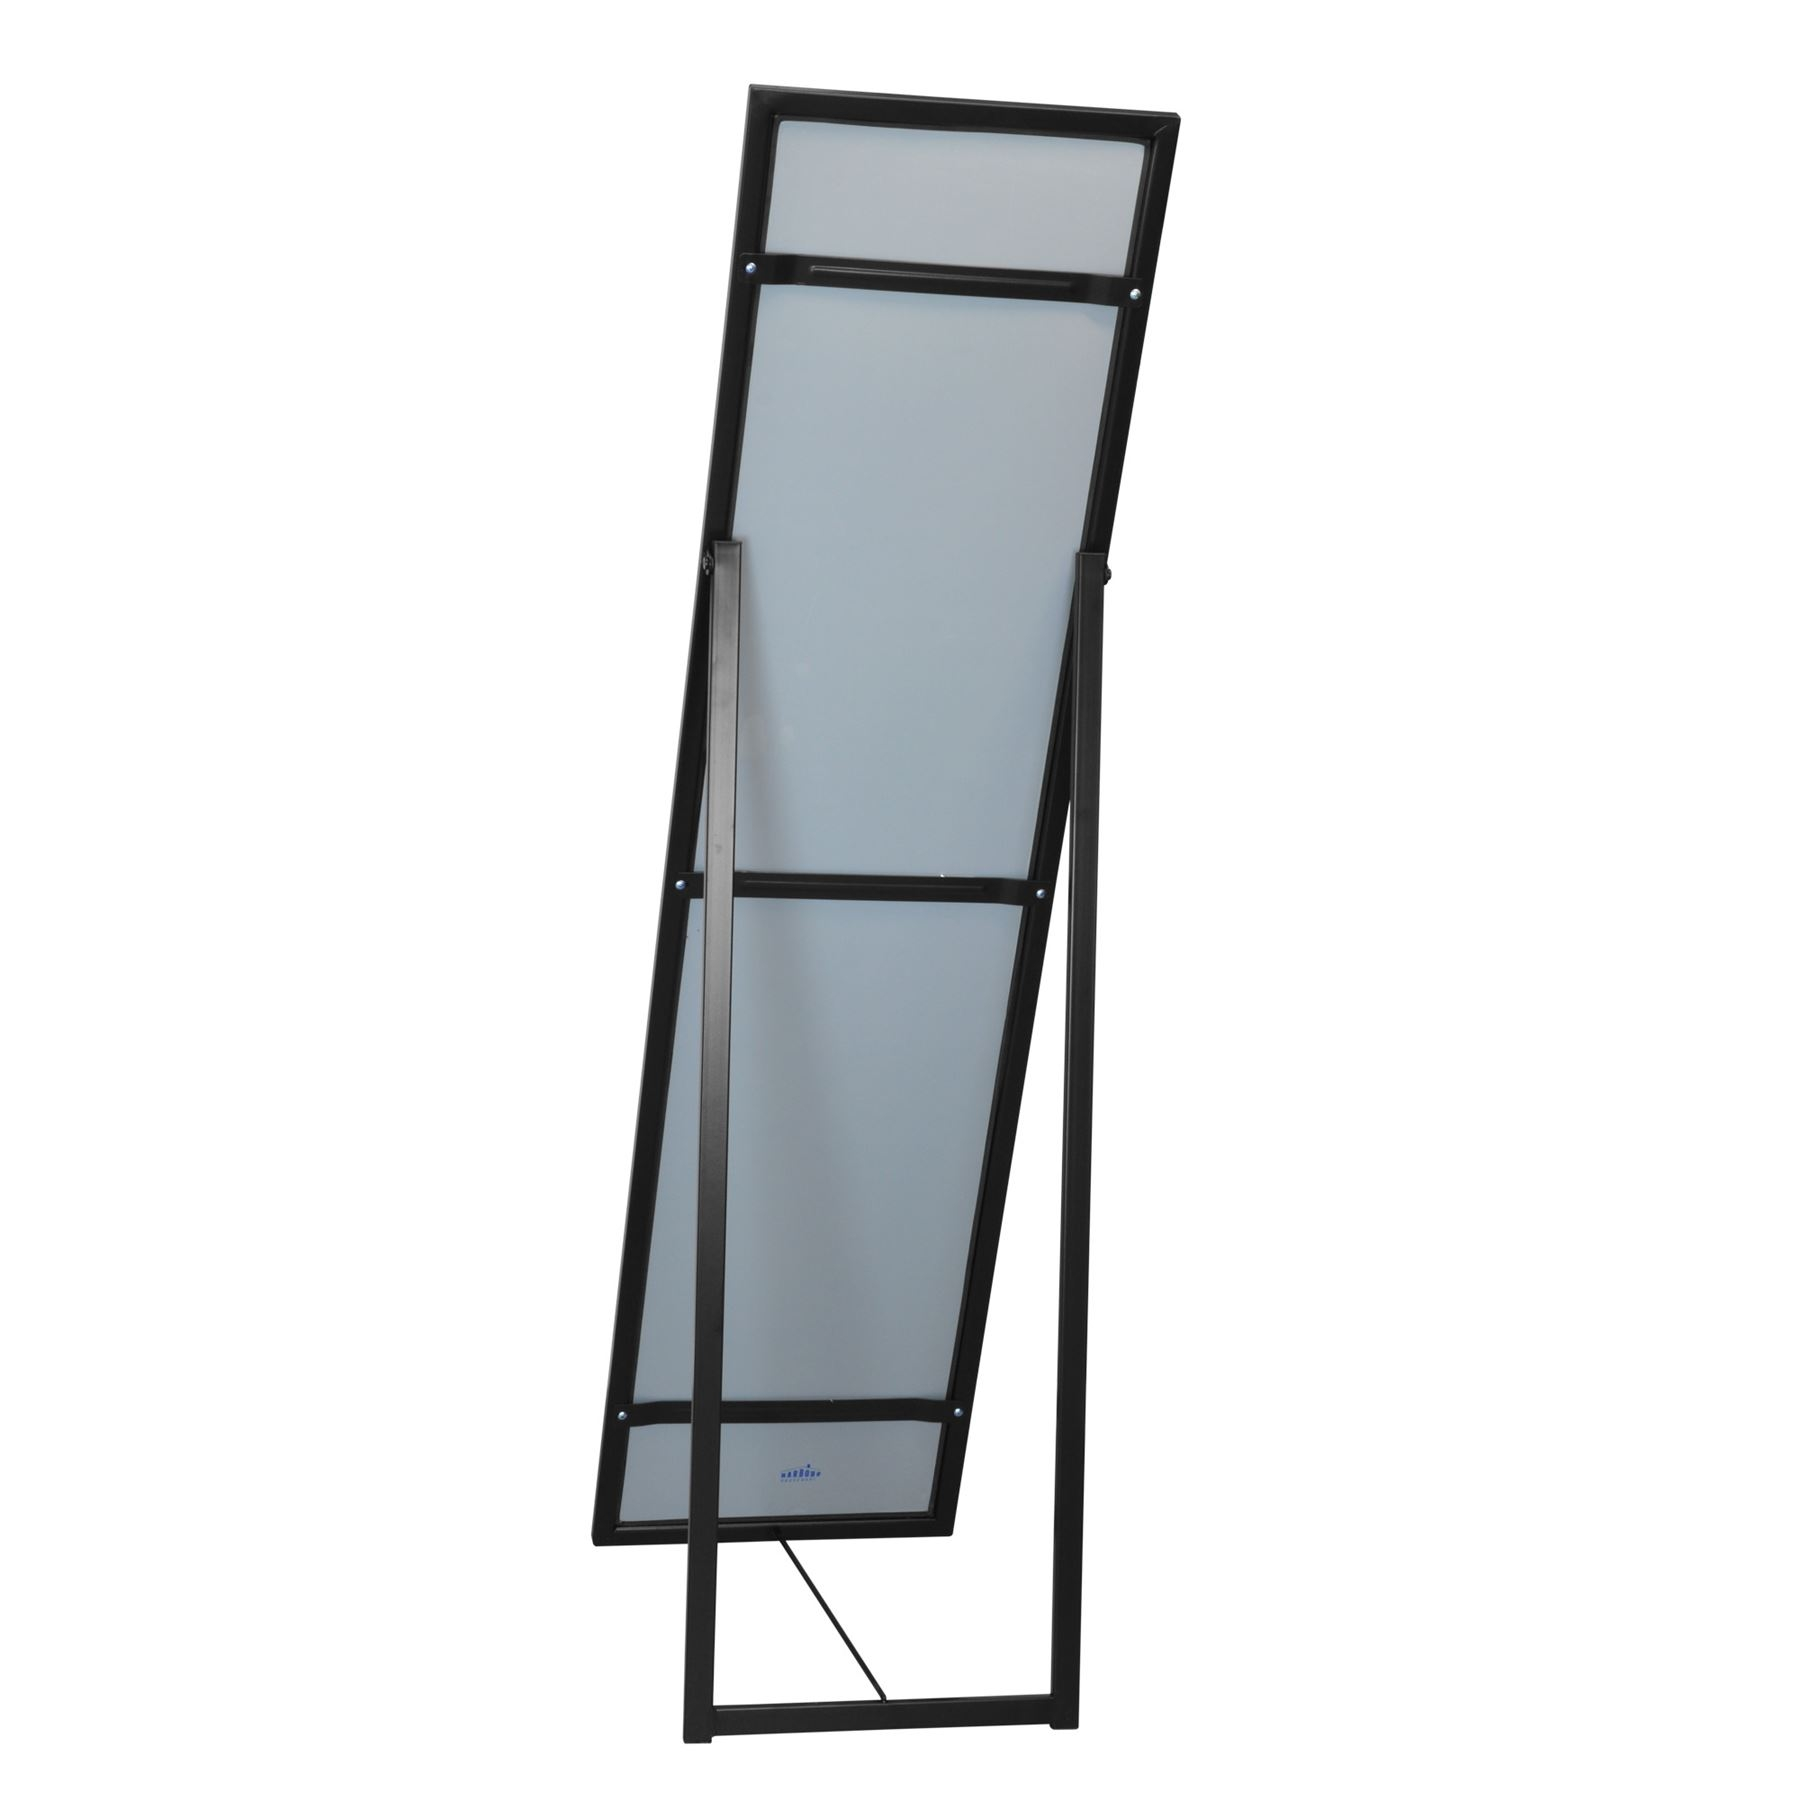 Metal Framed Free Standing Full Length Mirror 1370mm Black Ebay For Free Standing Black Mirror (Image 11 of 15)